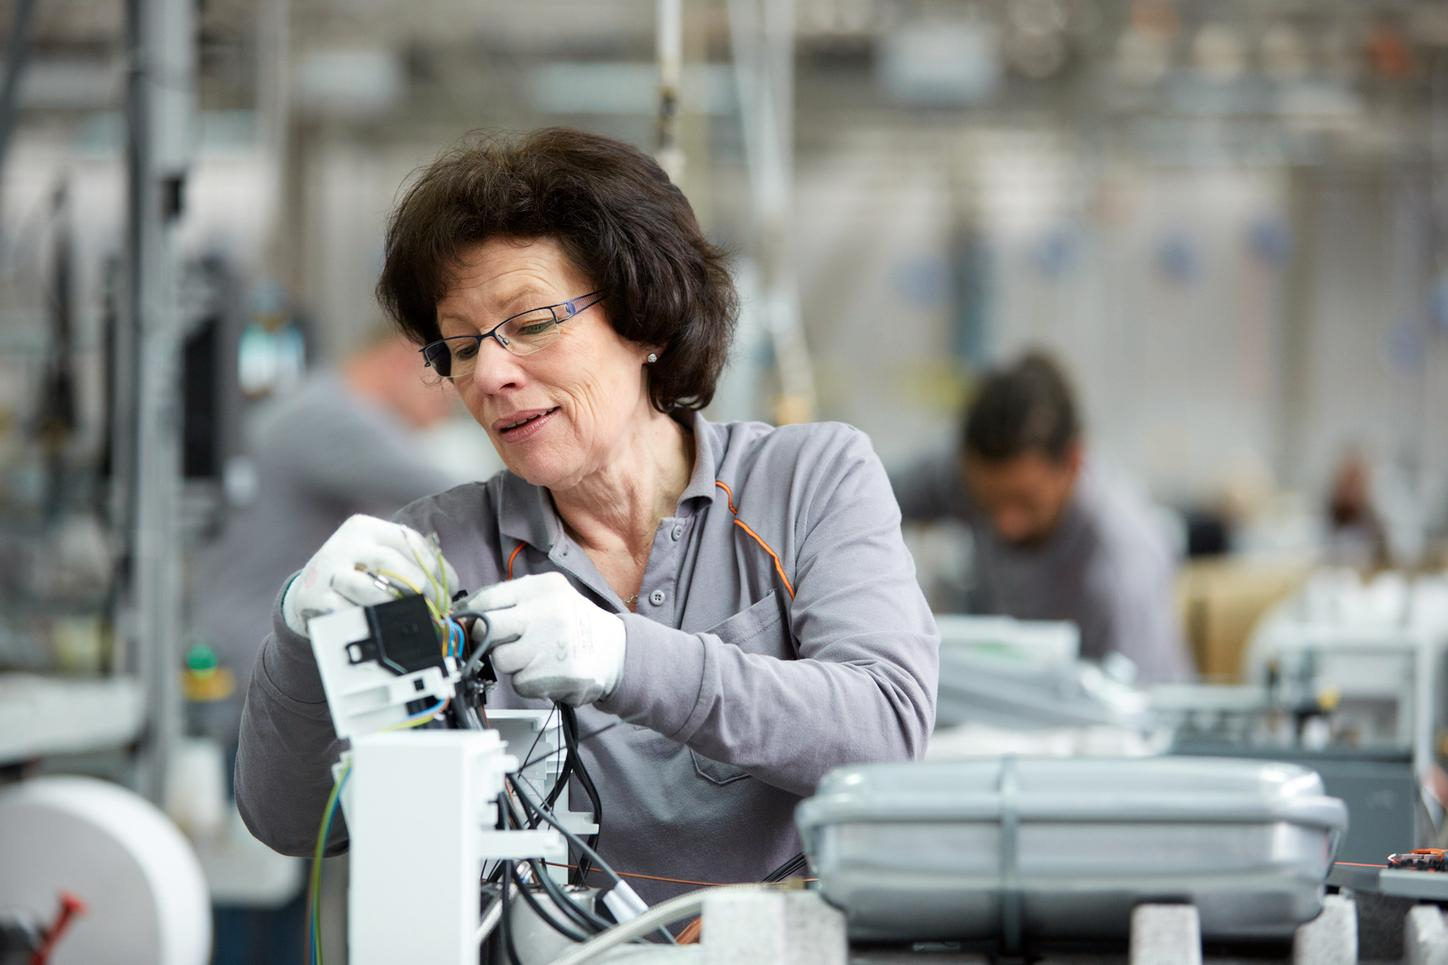 The image shows a female employee at the Allendorf factory.